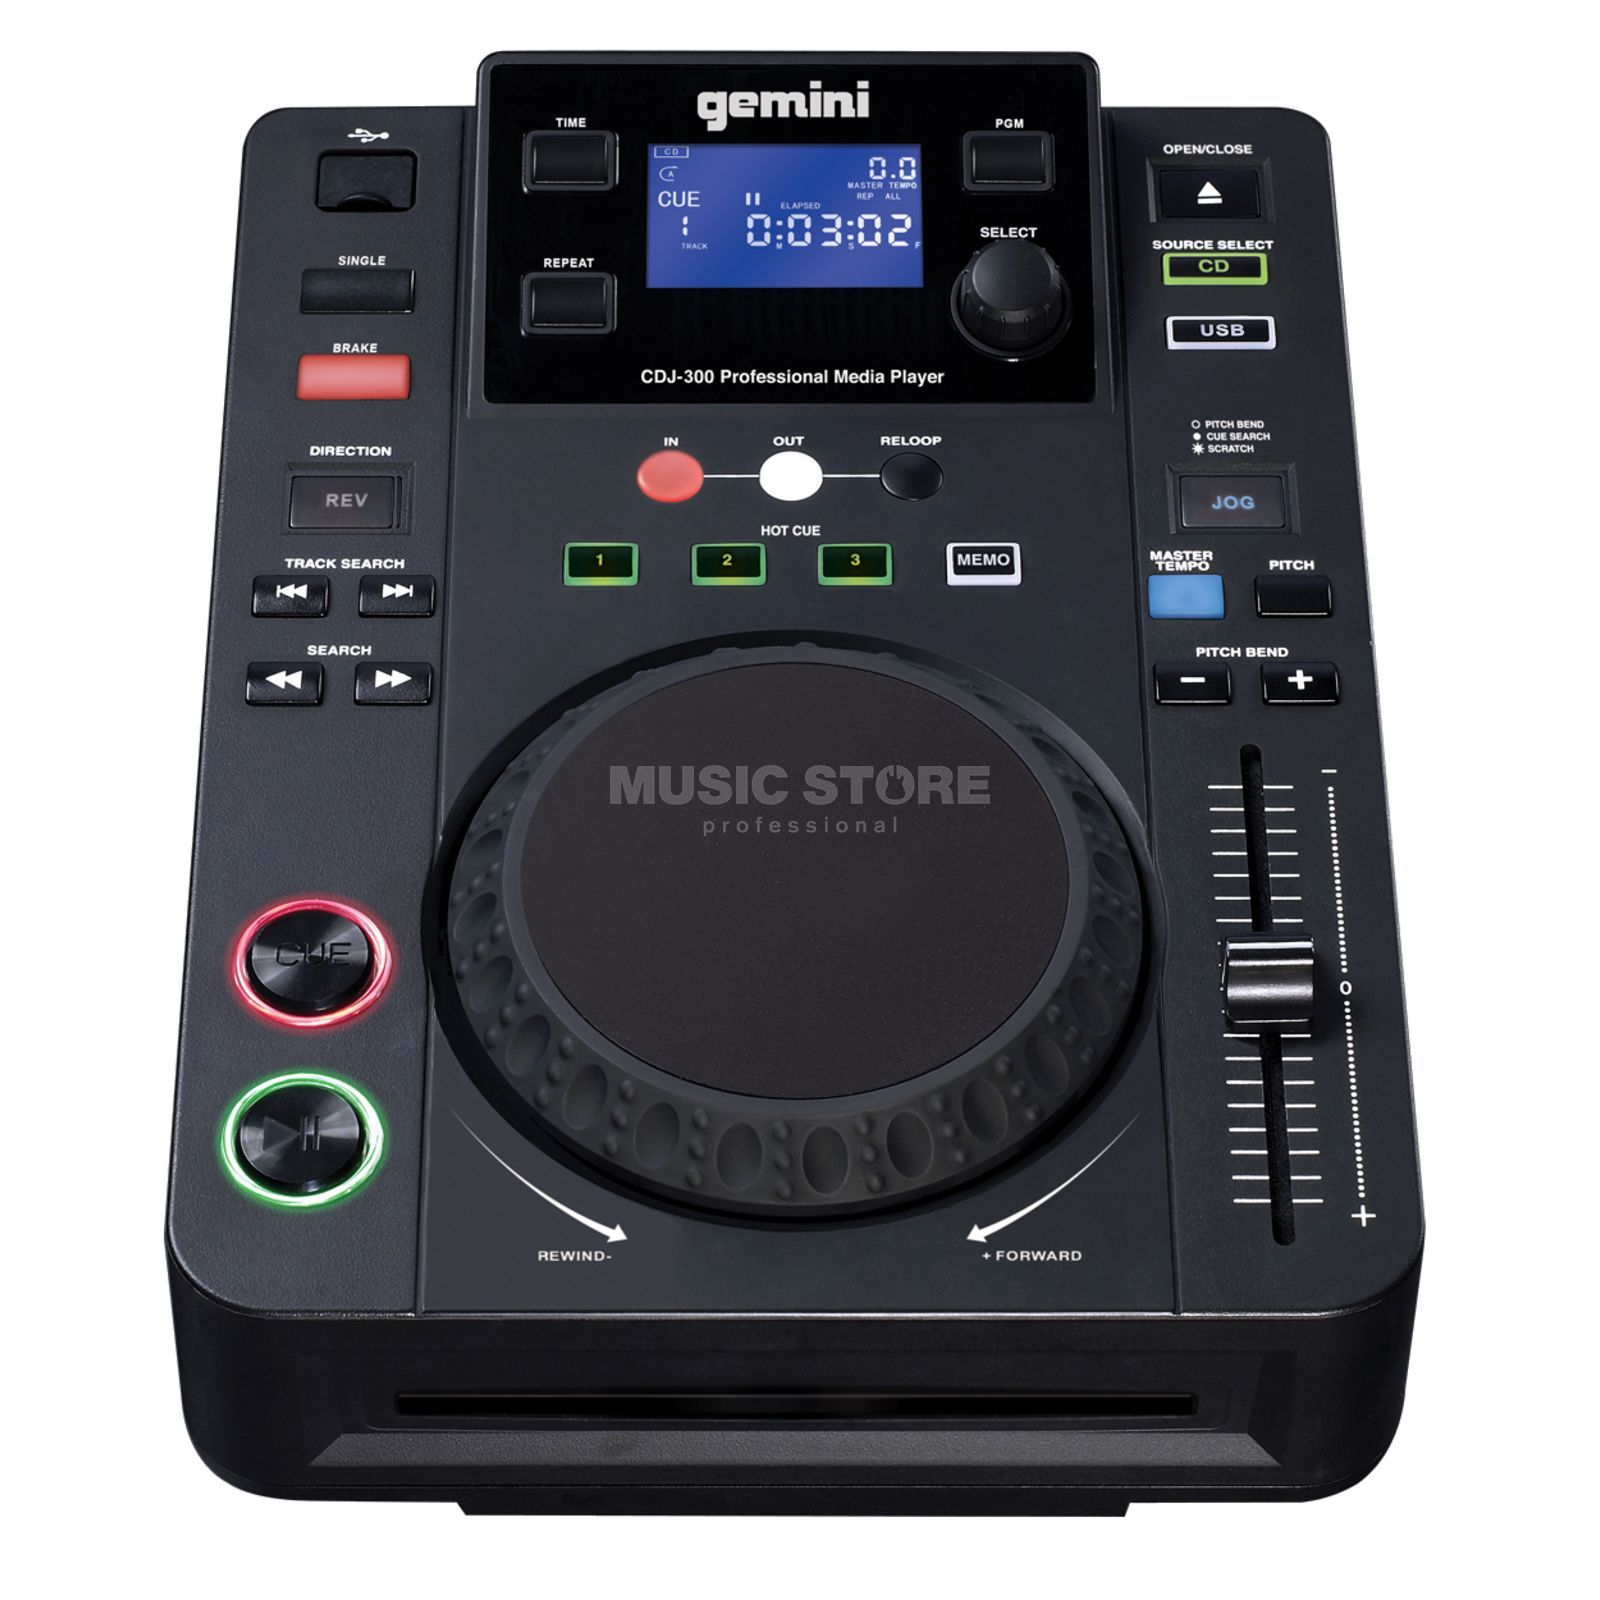 Gemini CDJ-300 CD/MP3 Player Zdjęcie produktu